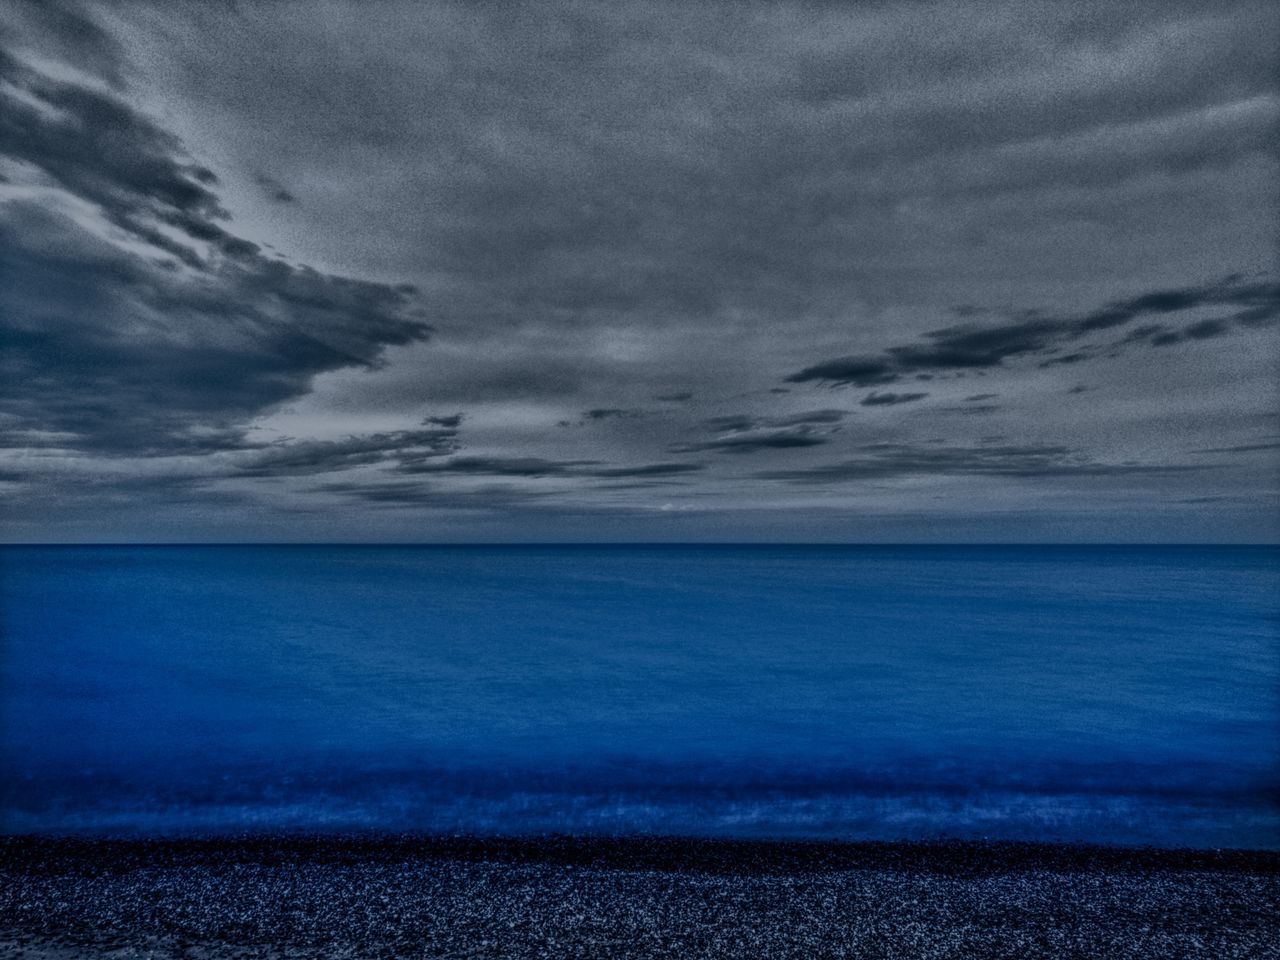 sea, horizon over water, water, tranquil scene, sky, cloud - sky, scenics, beach, tranquility, beauty in nature, nature, no people, outdoors, blue, storm cloud, day